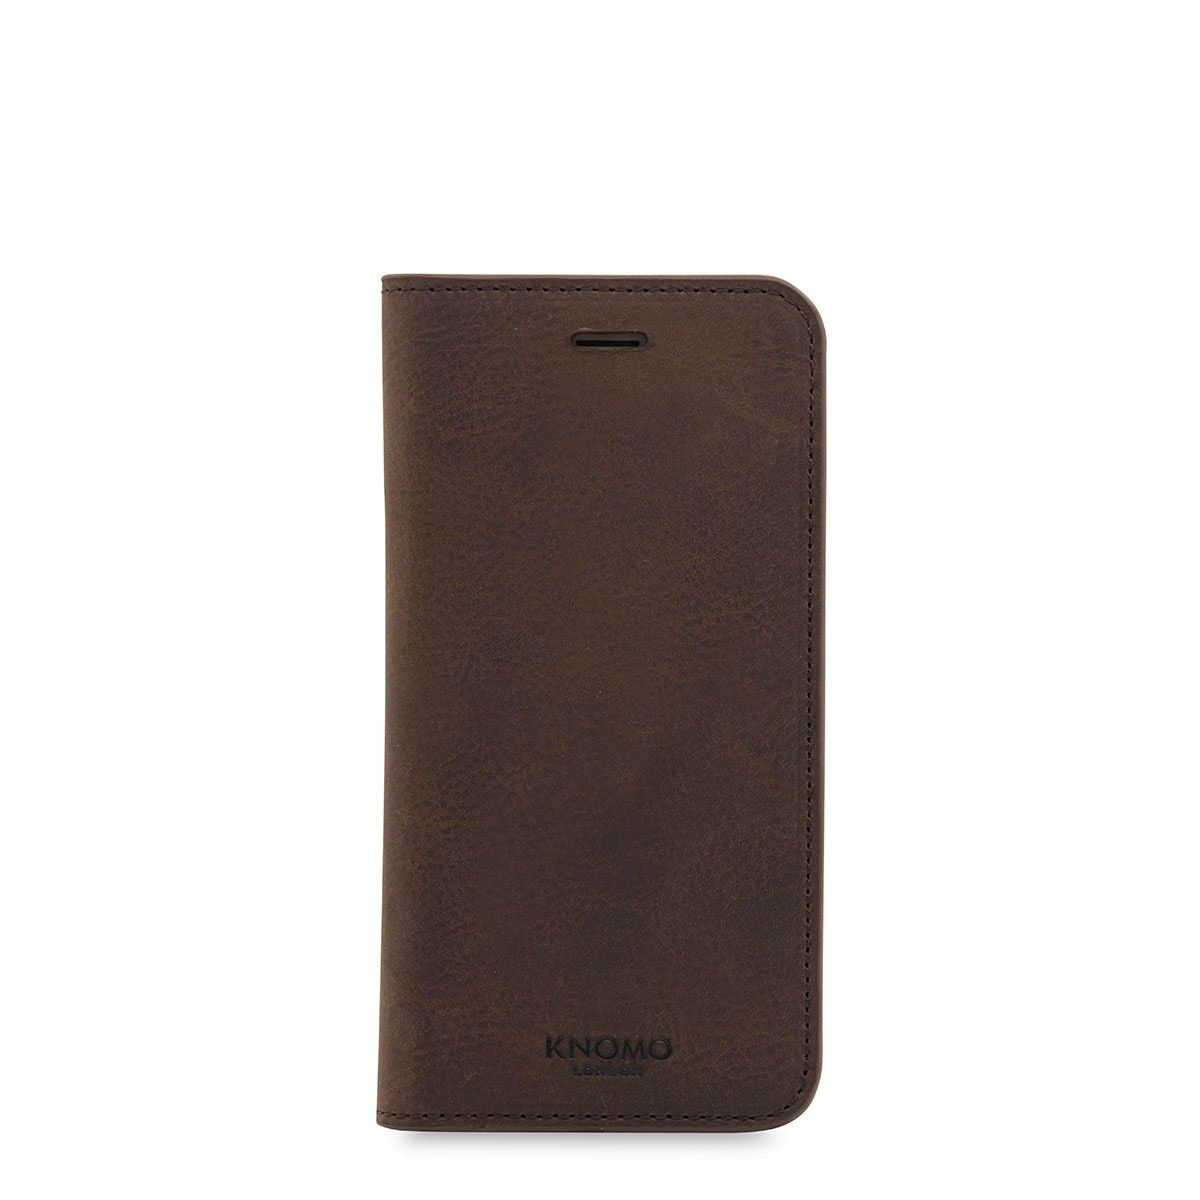 iPhone hoesje Knomo iPhone 8/7 Hoesje Leather Premium Folio Brown